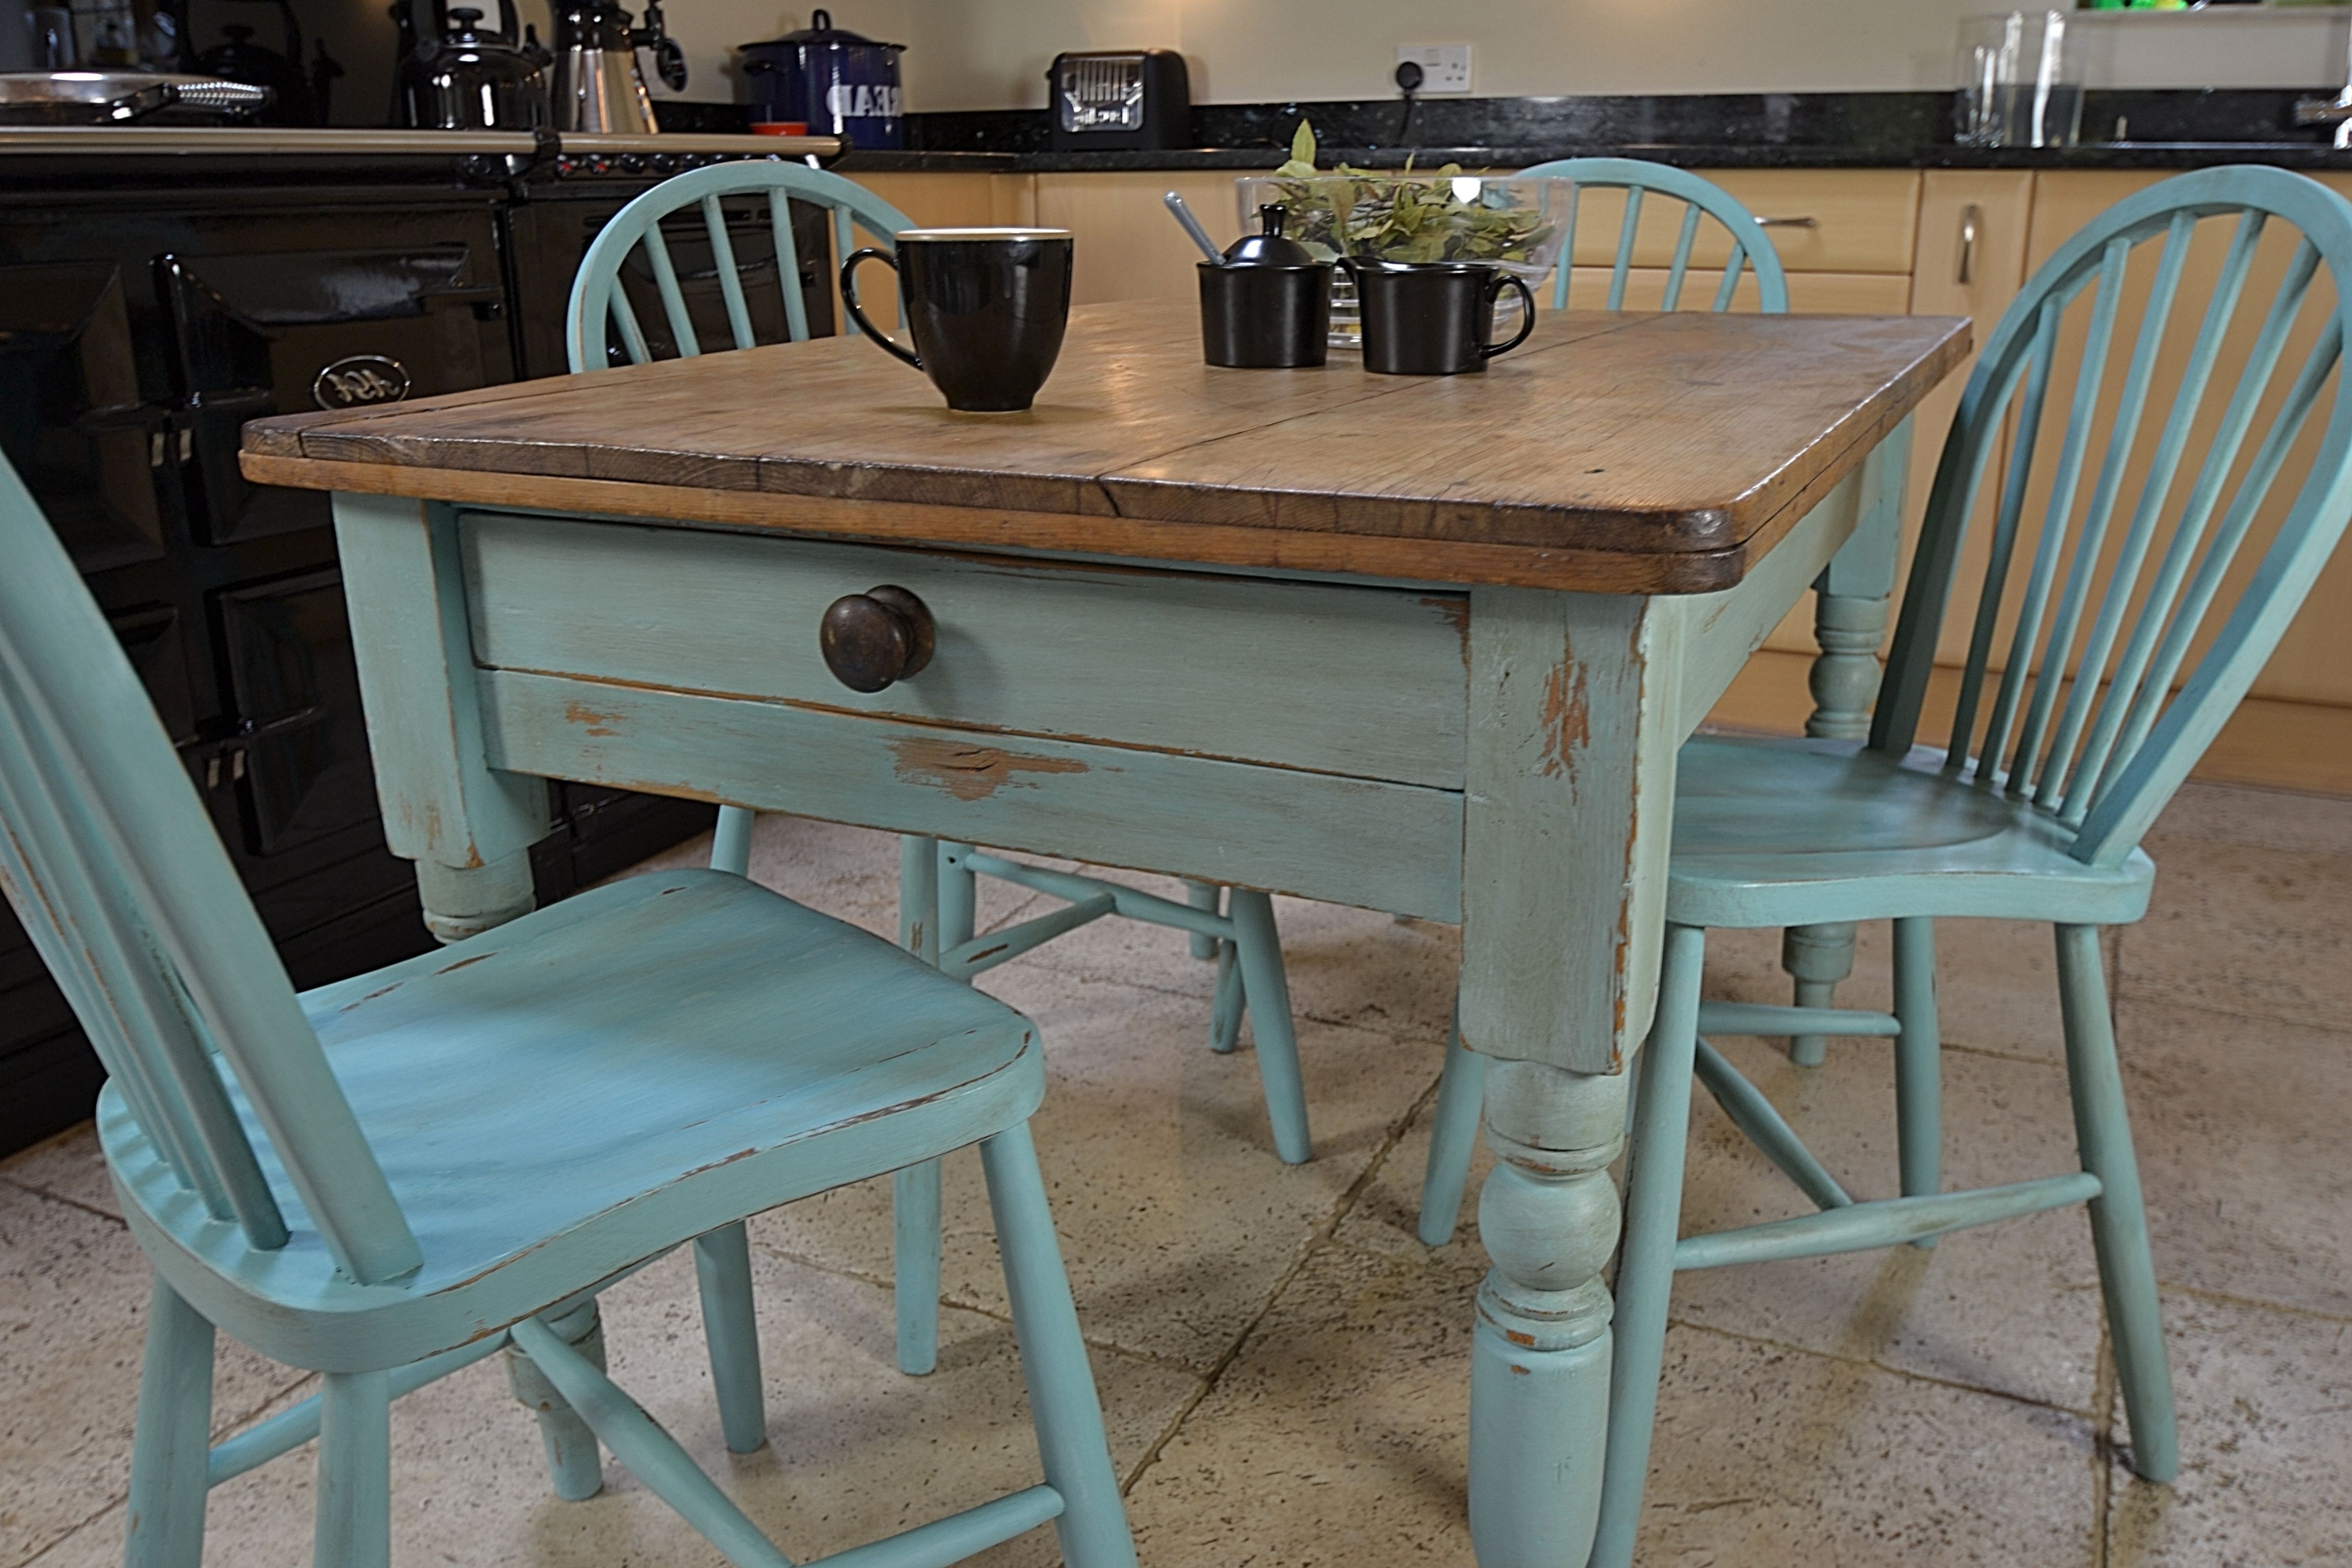 Shabby Chic Farmhouse Rustic Dining Table With 4 Stickback Chairs Throughout Favorite Shabby Chic Cream Dining Tables And Chairs (View 10 of 25)